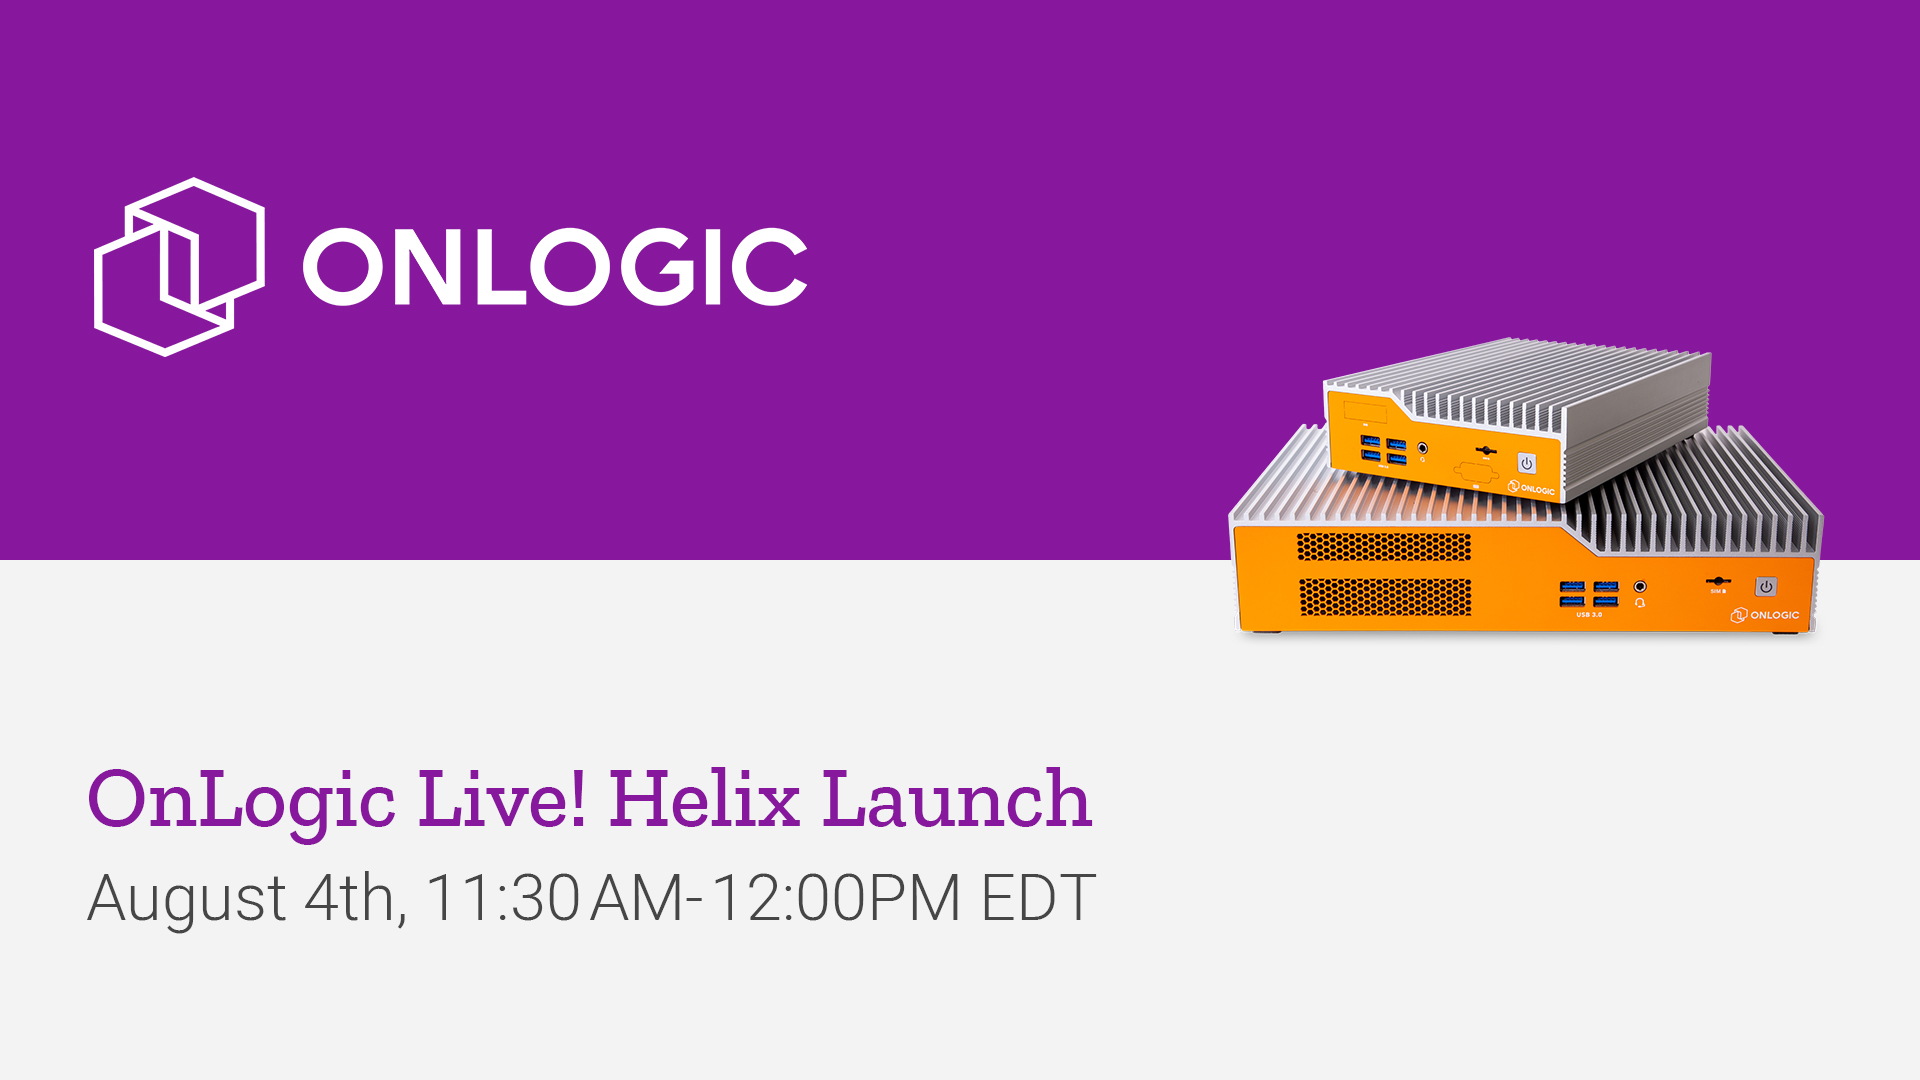 OnLogic Live Helix Launch